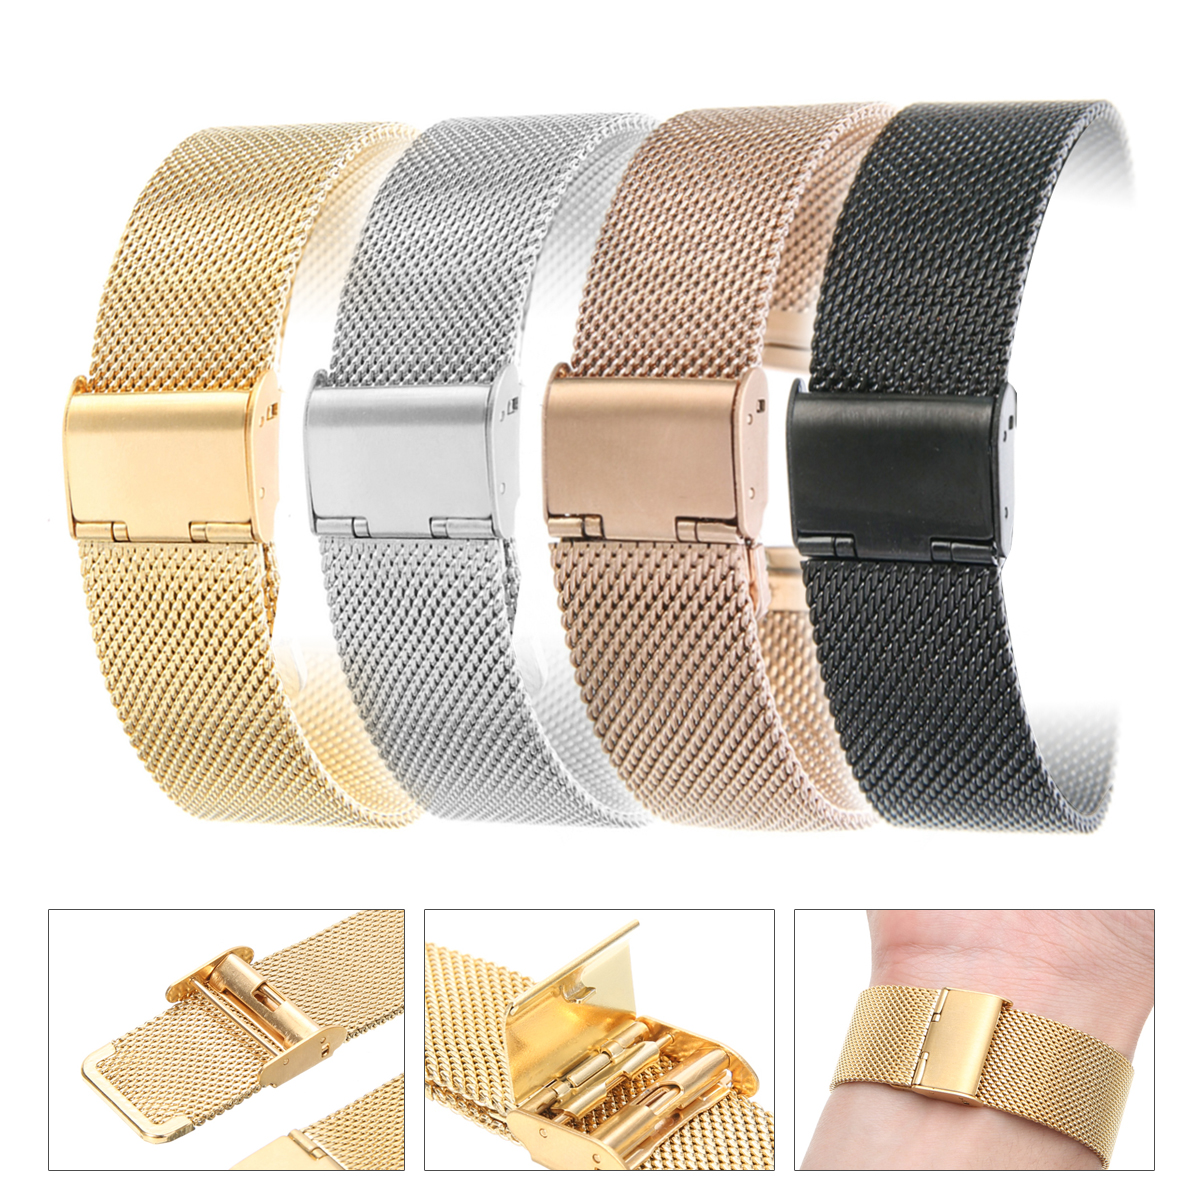 Shellhard 12mm/14mm/16mm/18mm/20mm/22mm/24mm Stainless Steel Watch Strap 4 Colors Straight End Mesh Buckle Watch Band Strap top quality new stainless steel strap 18mm 13mm flat straight end metal bracelet watch band silver gold watchband for brand